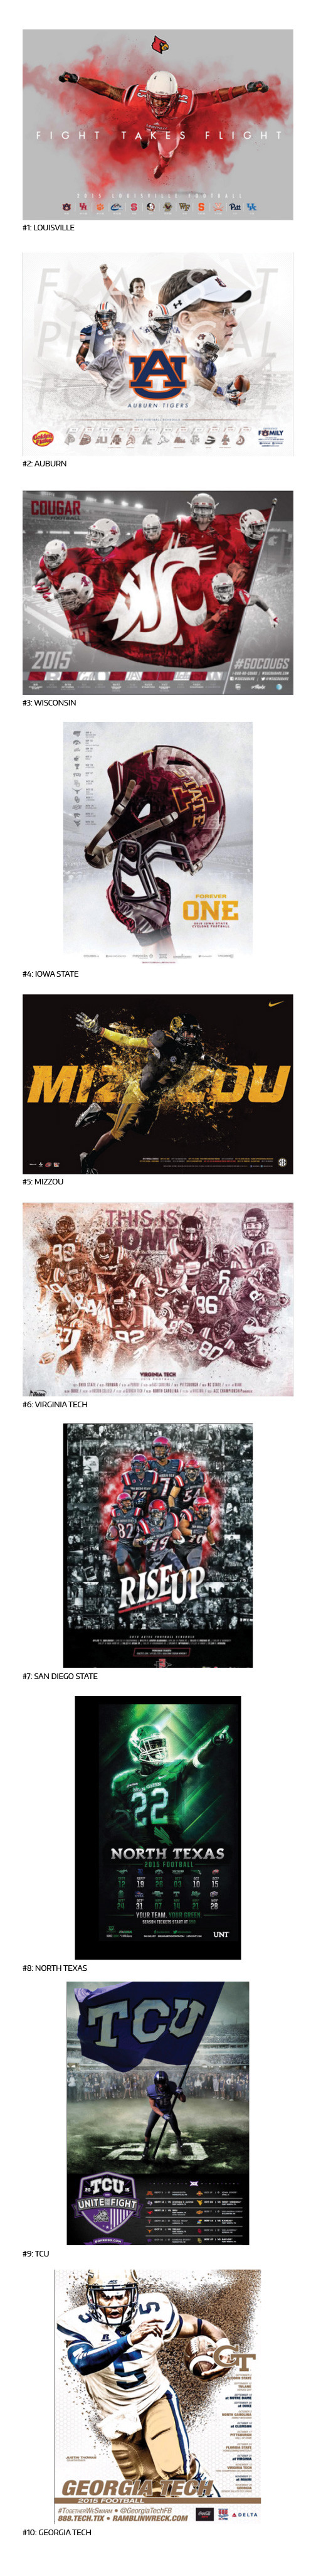 TOP 10 COLLEGE FOOTBALL POSTERS